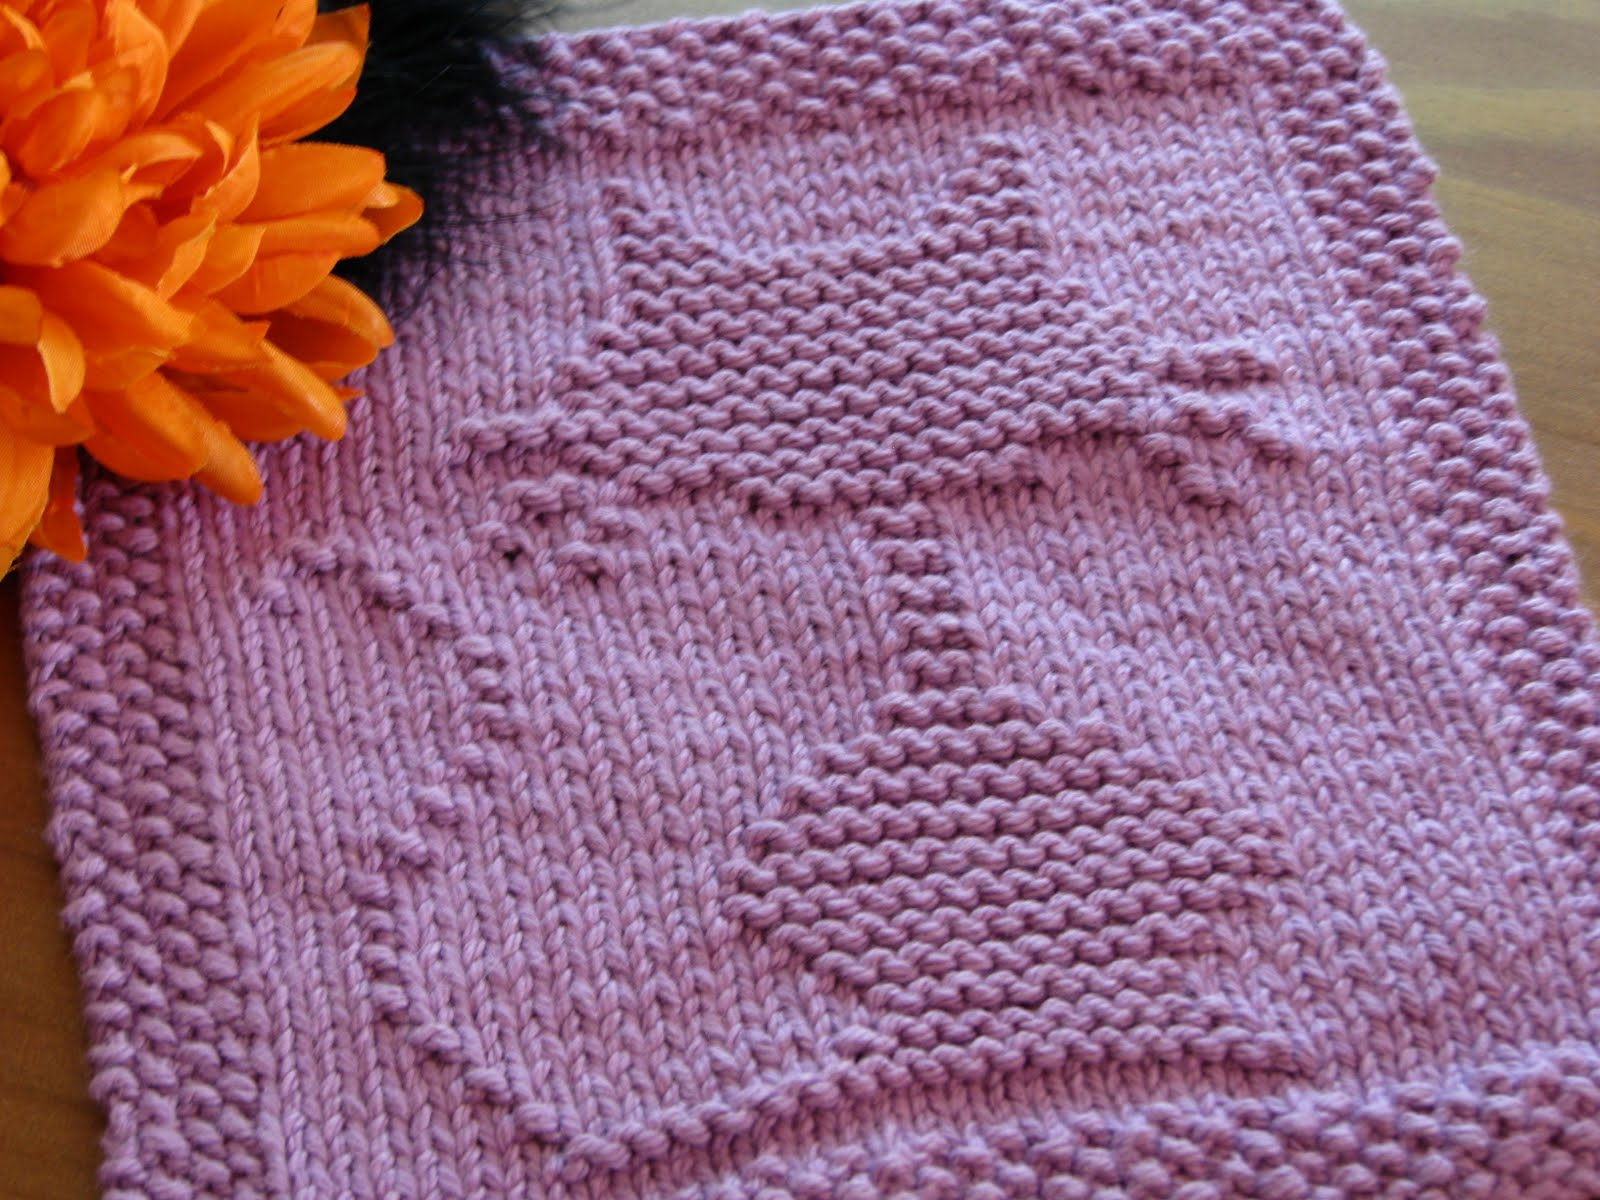 Dishcloth Knit Patterns Free : One Crafty Mama: Halloween Cat Dishcloth